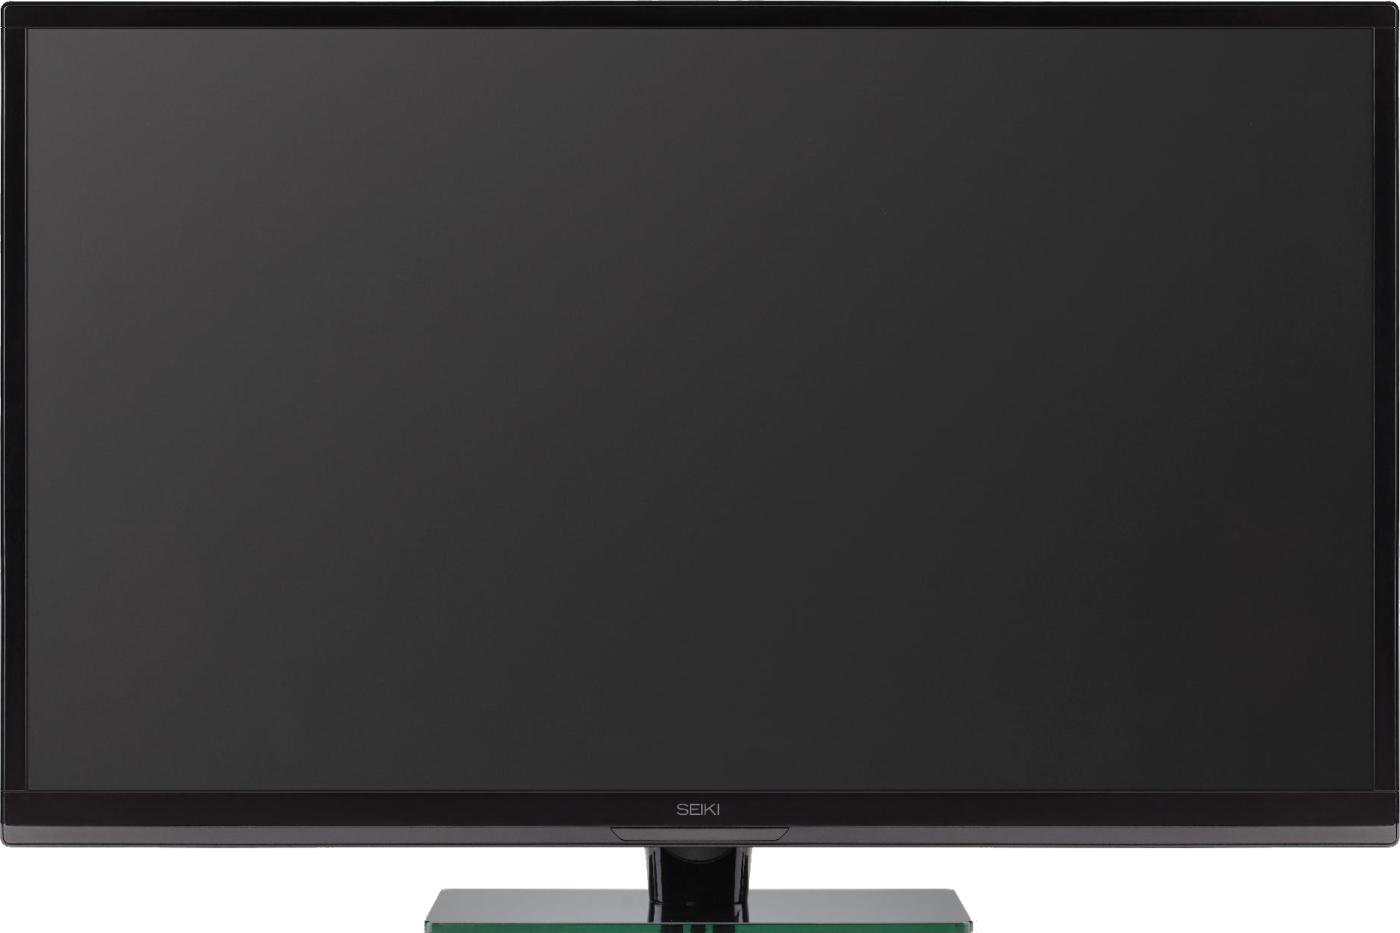 Seiki SE39UY04 LED TV